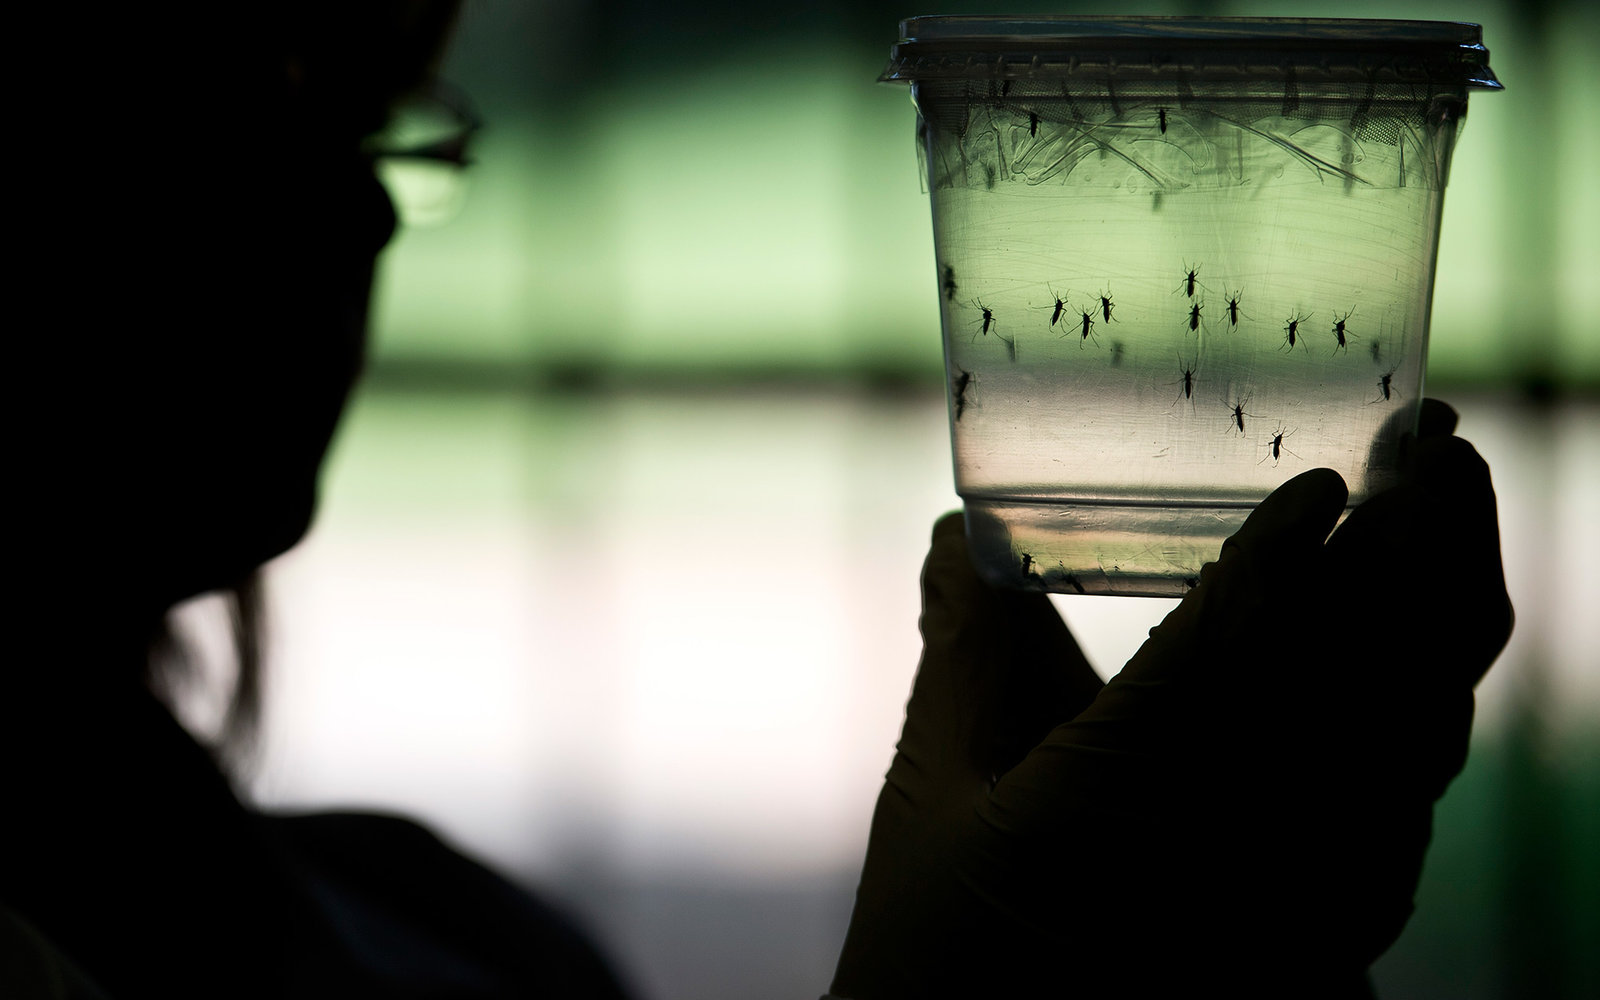 A researcher looks at Aedes aegypti mosquitoes kept in a container at a lab of the Institute of Biomedical Sciences of the Sao Paulo University, on January 8, 2016 in Sao Paulo, Brazil. Researchers at the Pasteur Institute in Dakar, Senegal are  in Brazil